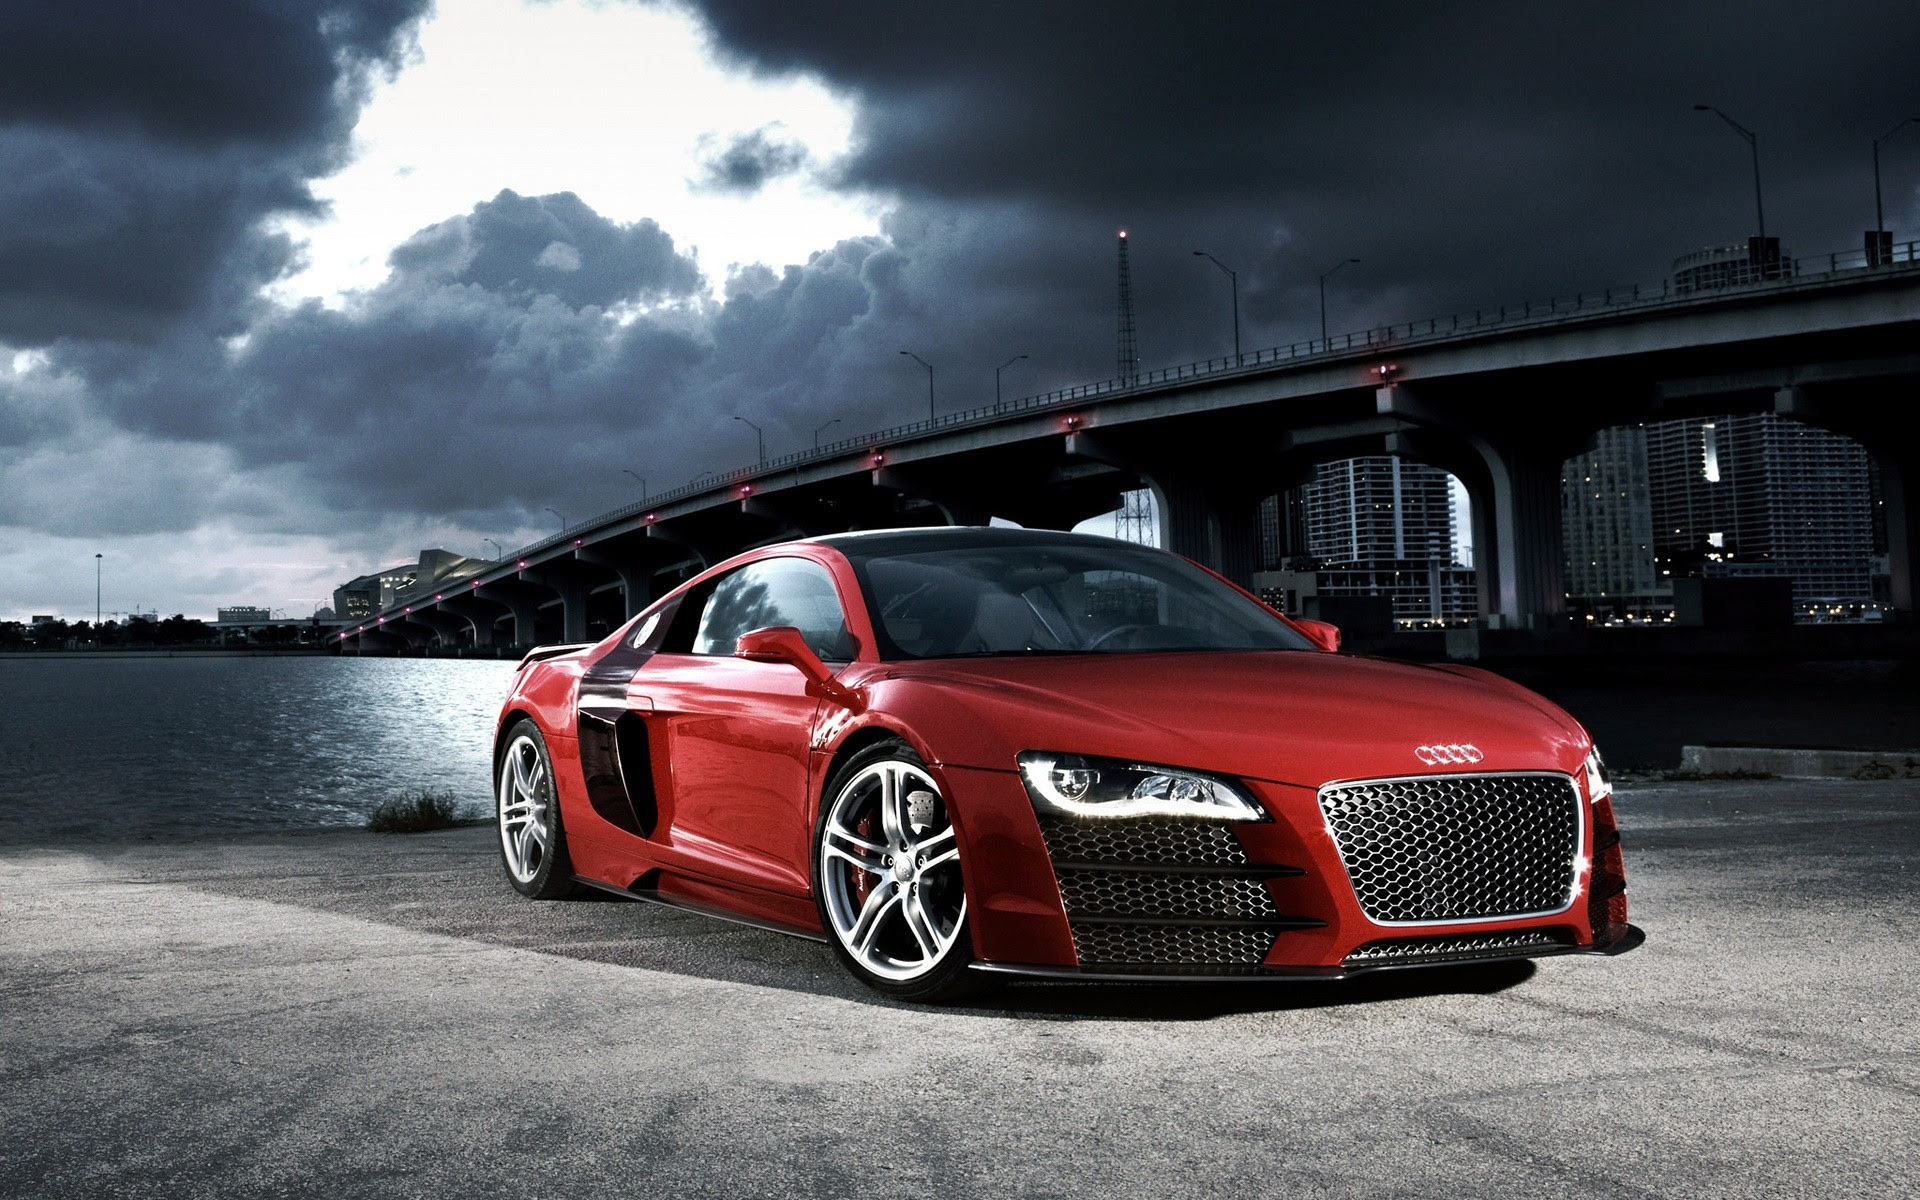 Audi Wallpaper 4 Background Wallpaper Car Hd Wallpaper Carwallpapersfordesktop Org